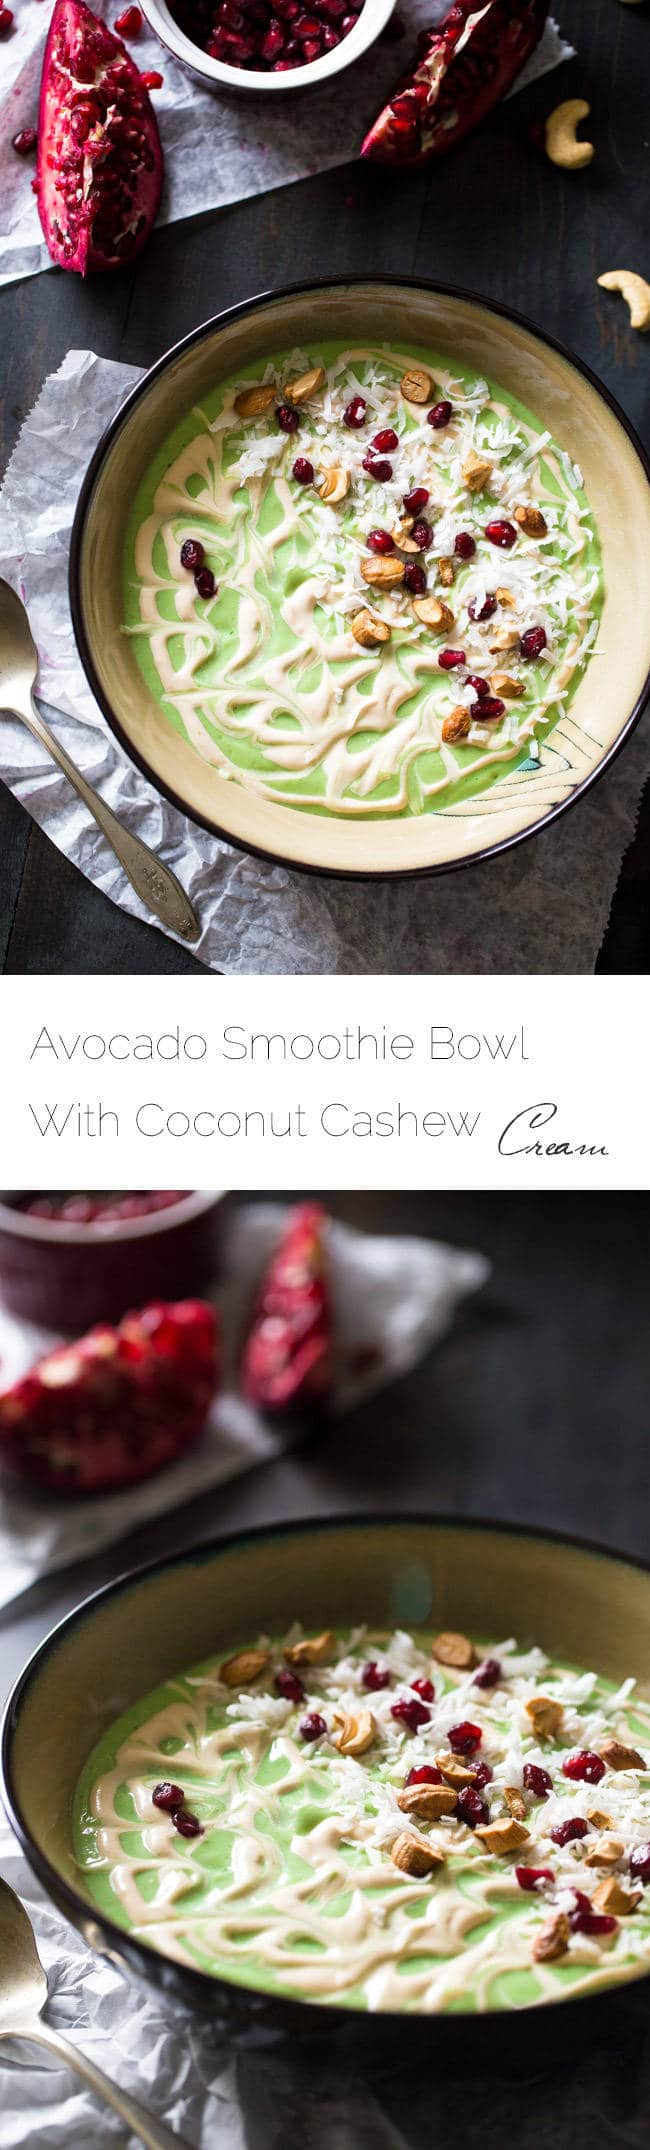 Avocado Smoothie Bowl with Cashew Cream - Ready in 5 minutes, protein packed and full of superfoods! This will be your new favorite detox breakfast! | Foodfaithfitness.com | #recipe